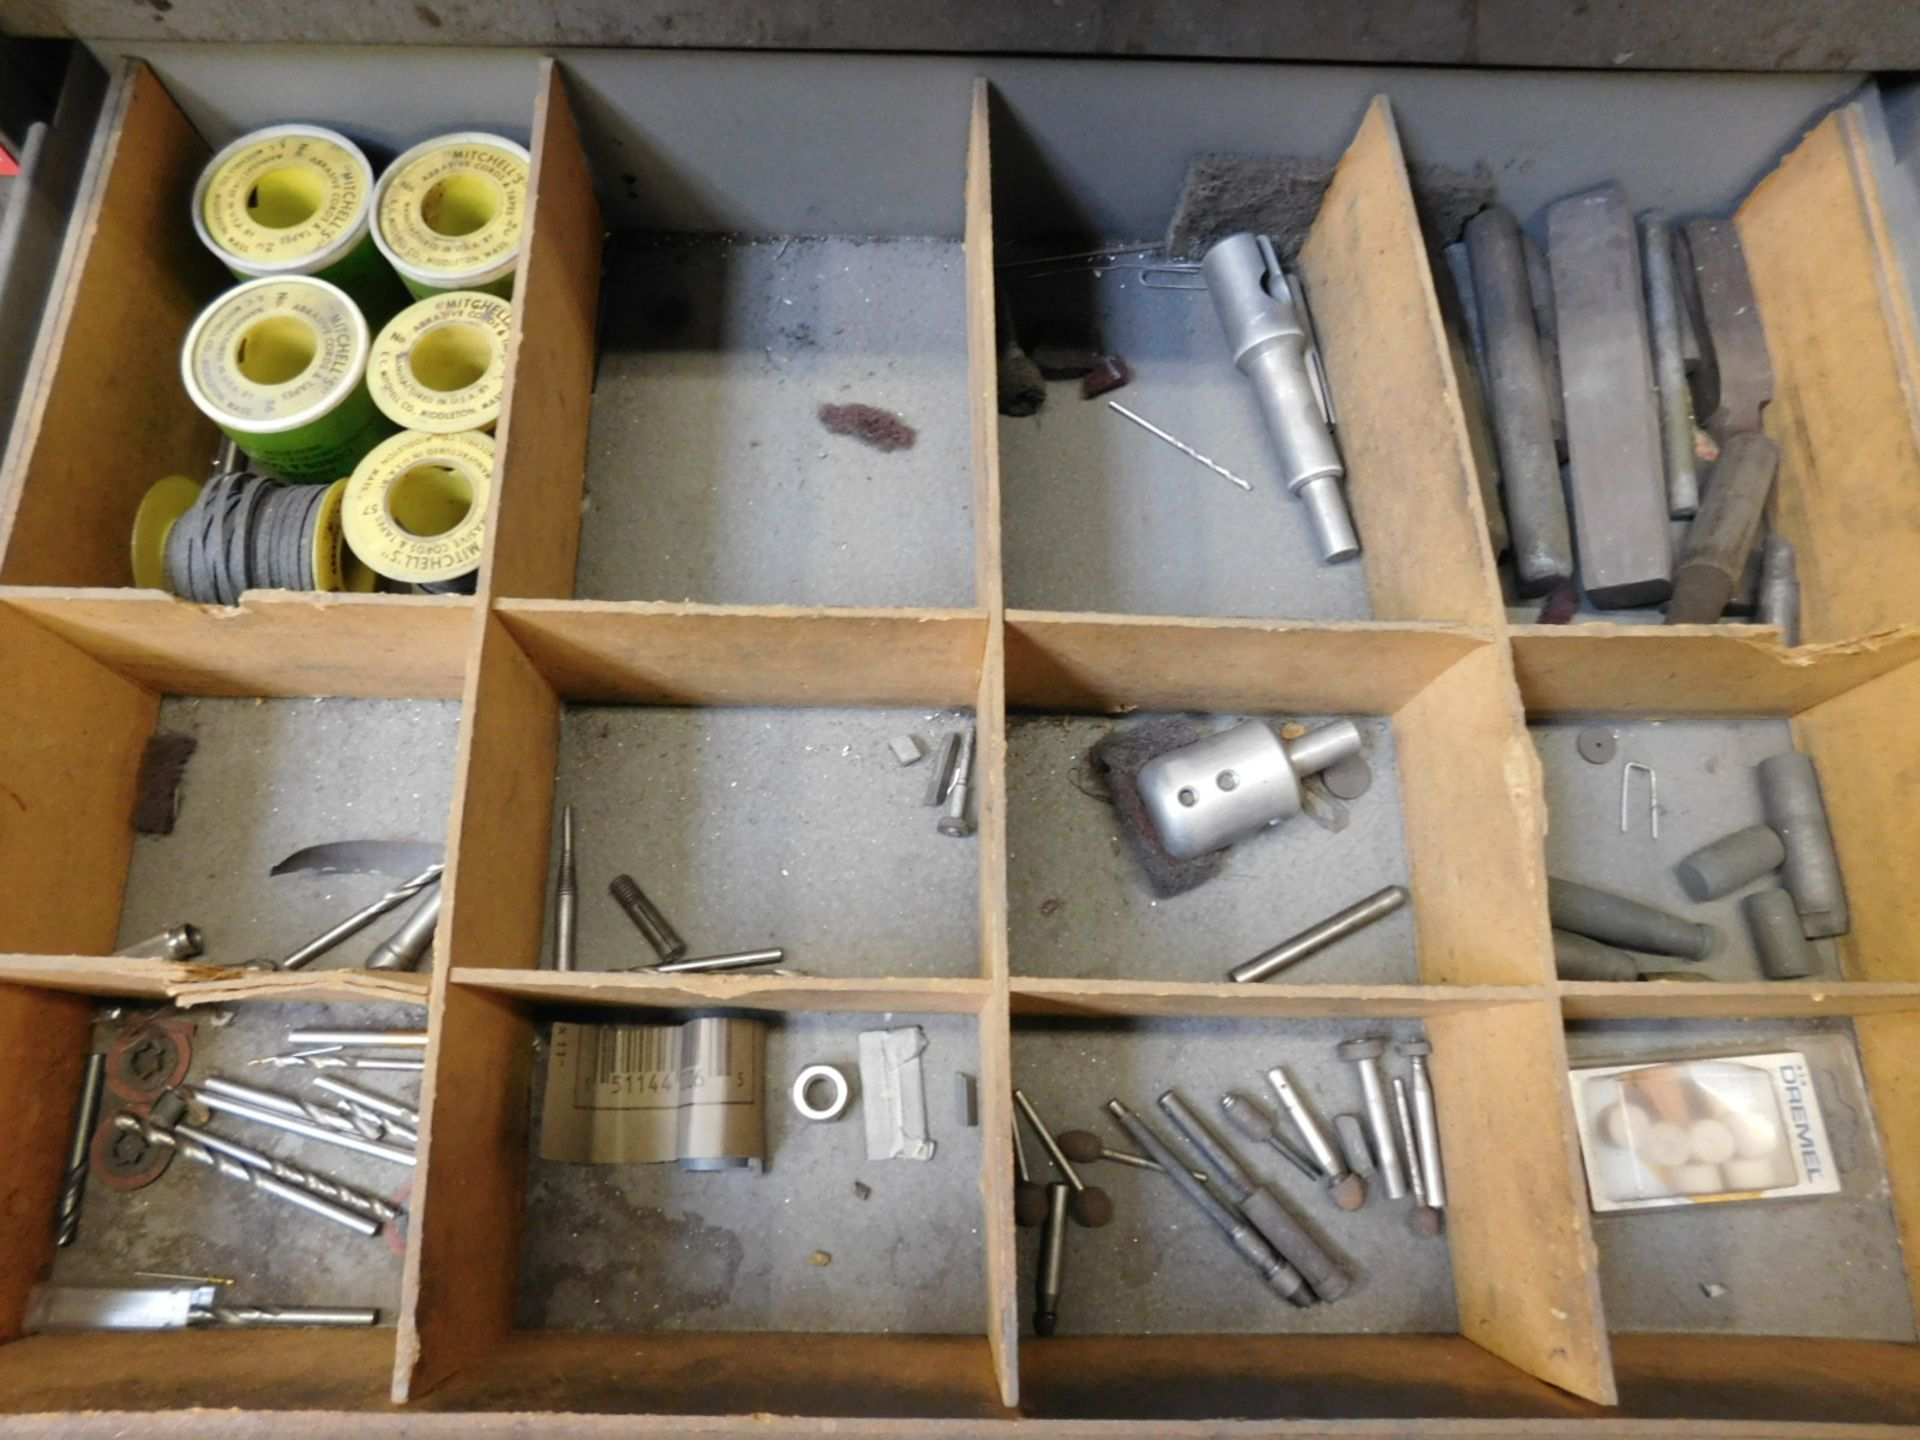 KENNEDY 5-DRAWER TOOL STORAGE CABINET, W/ CONTENTS OF MISC ABRASIVES, ETC. - Image 3 of 4